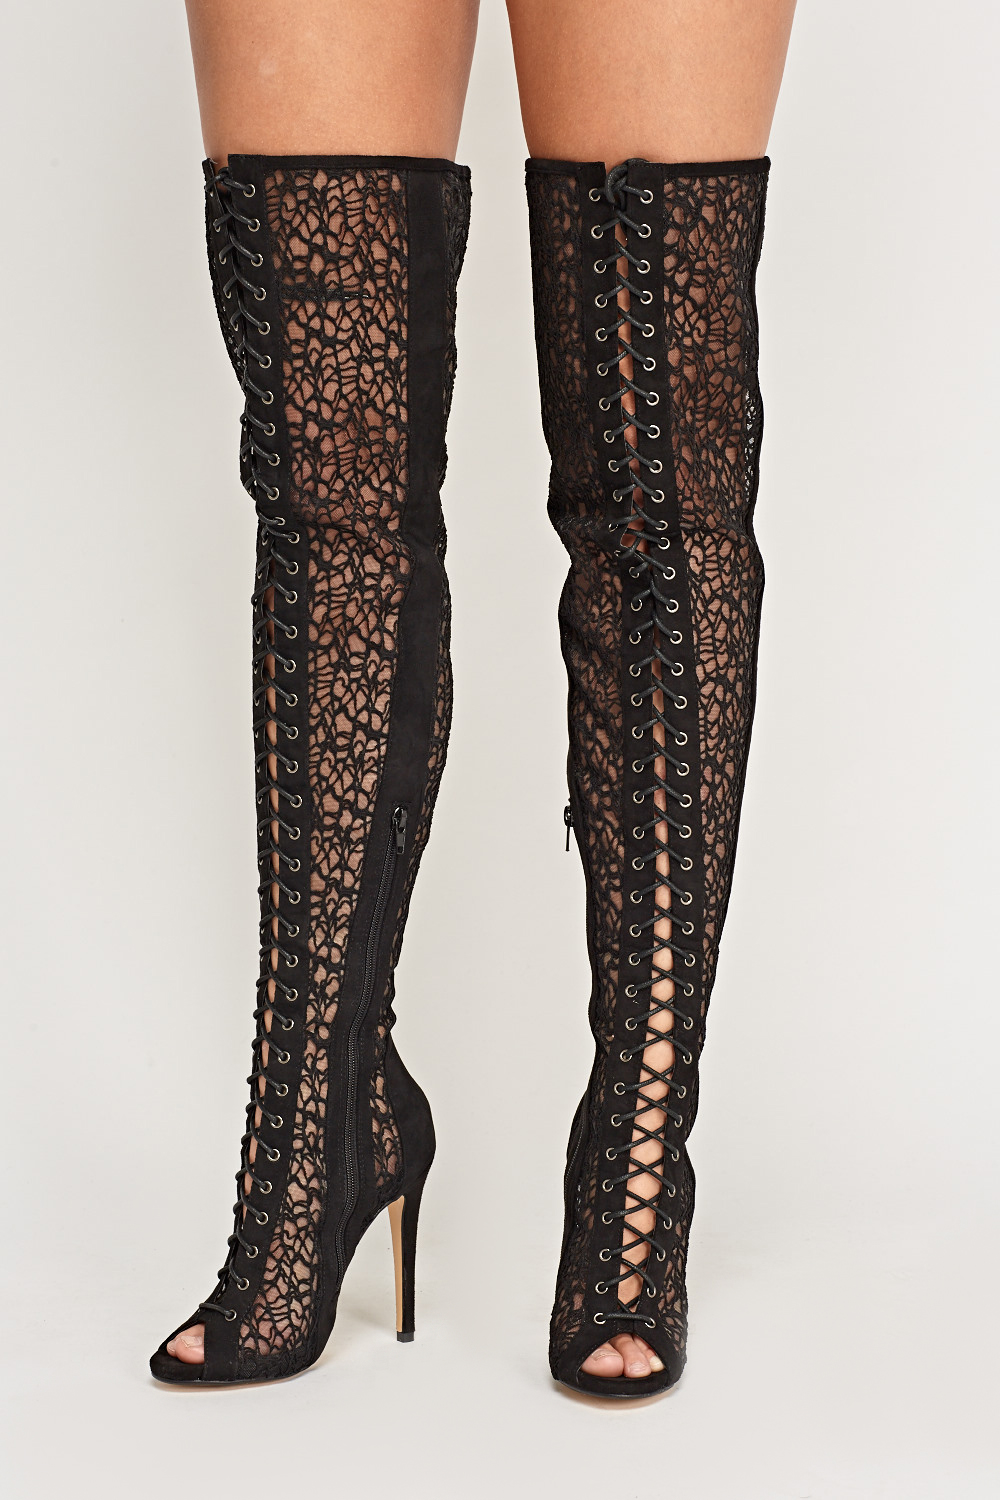 52ca95befab Mesh Lace Up Over The Knee Boots - Just £5